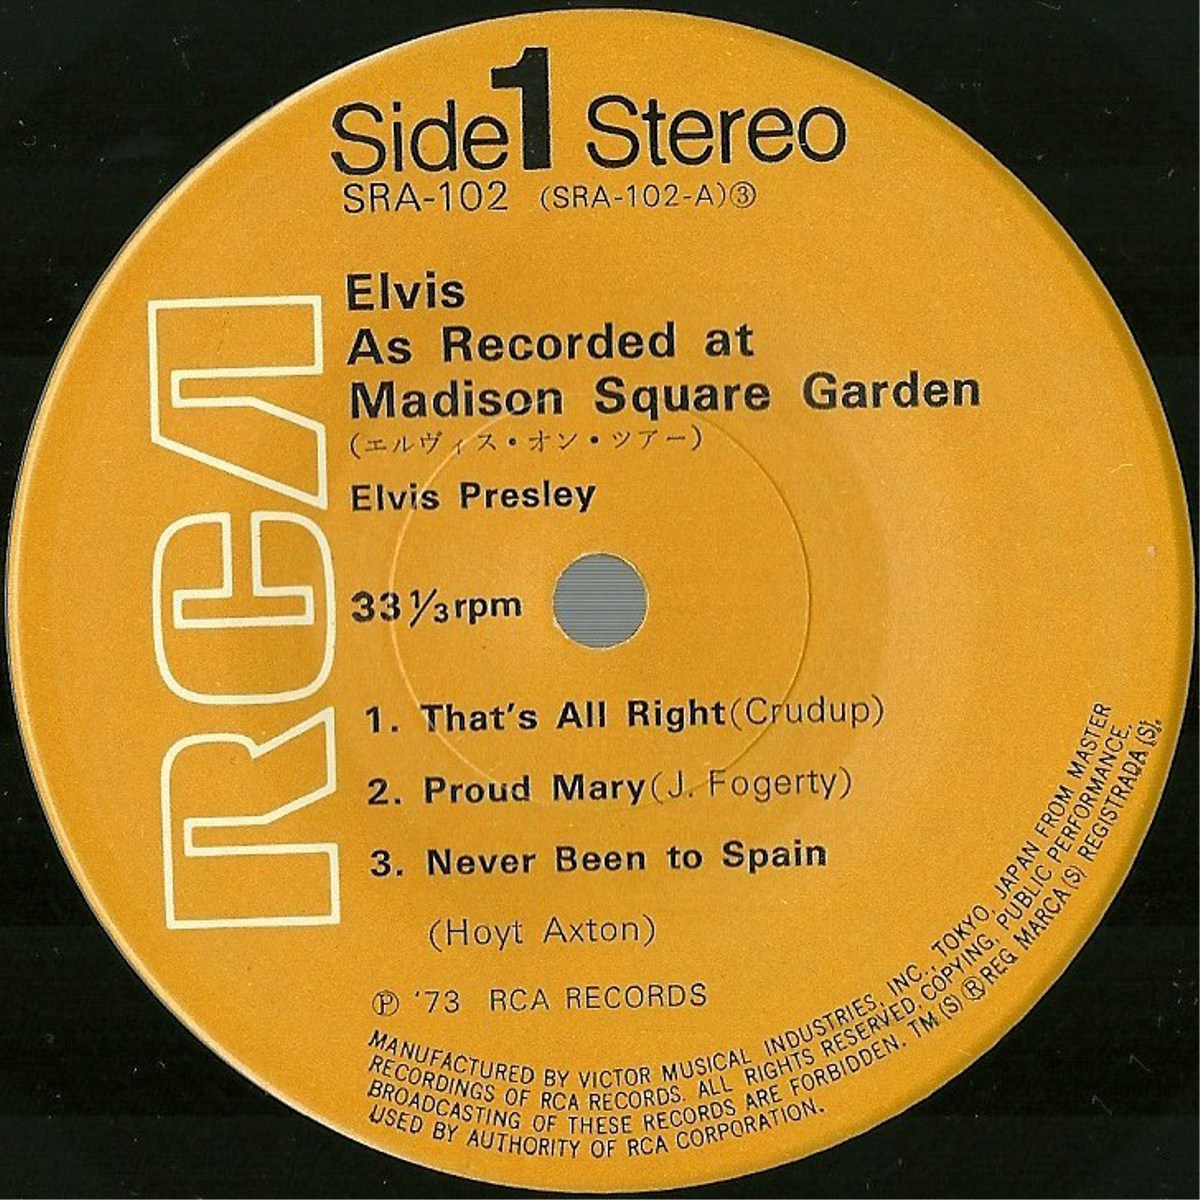 ELVIS - AS RECORDED AT MADISON SQUARE GARDEN Sra-102cuppvp